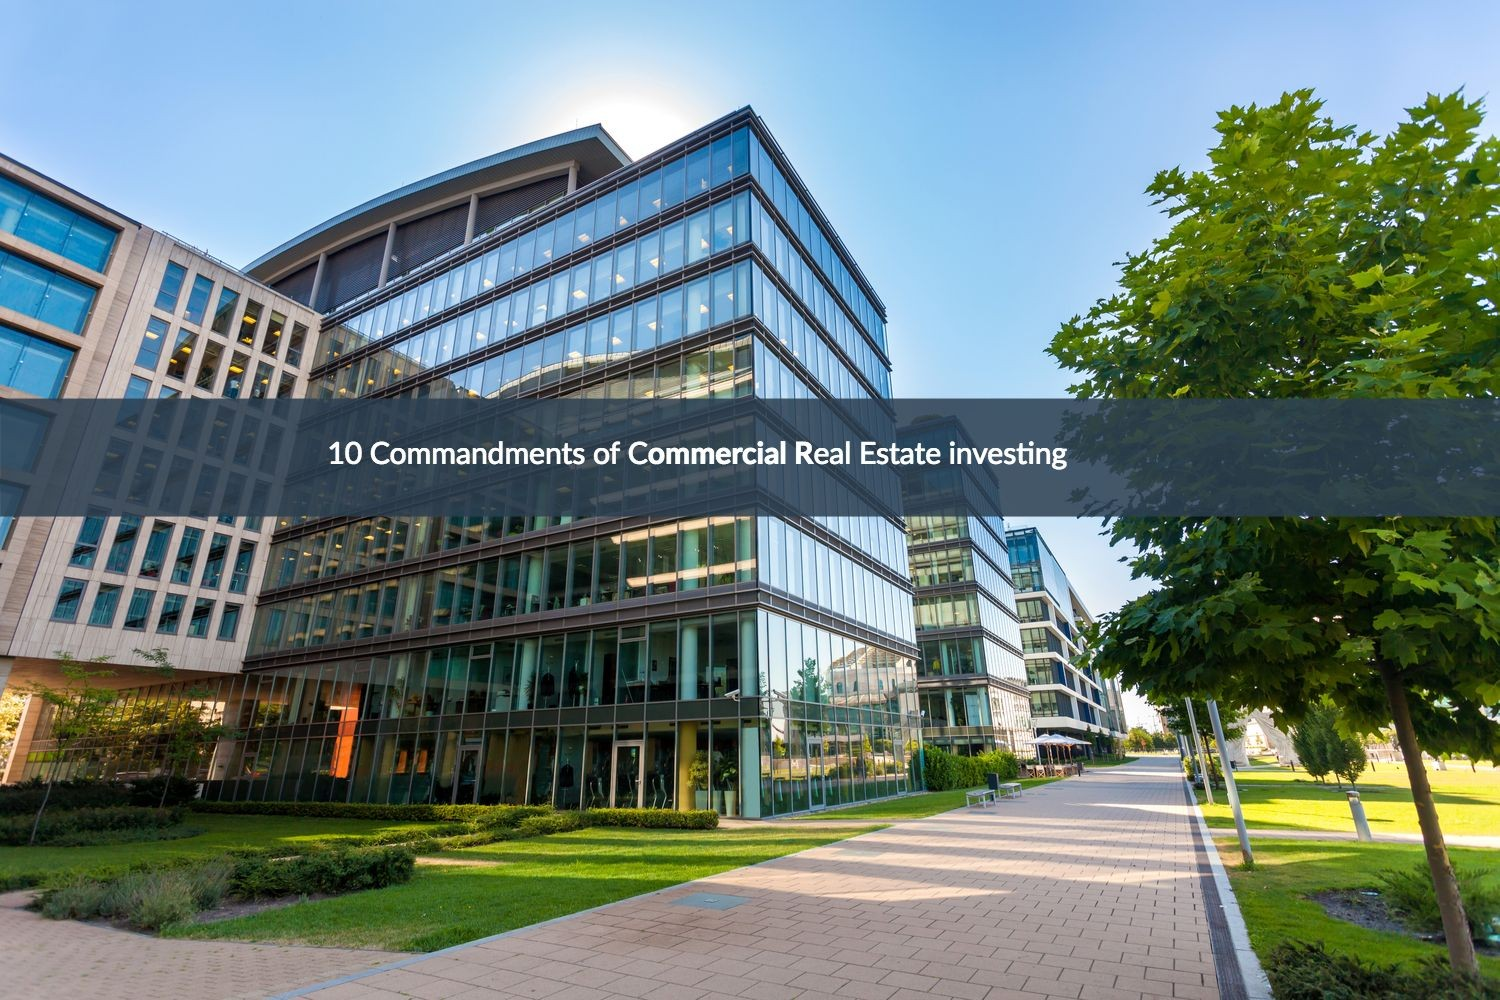 10 Commandments of Real Estate Investing!